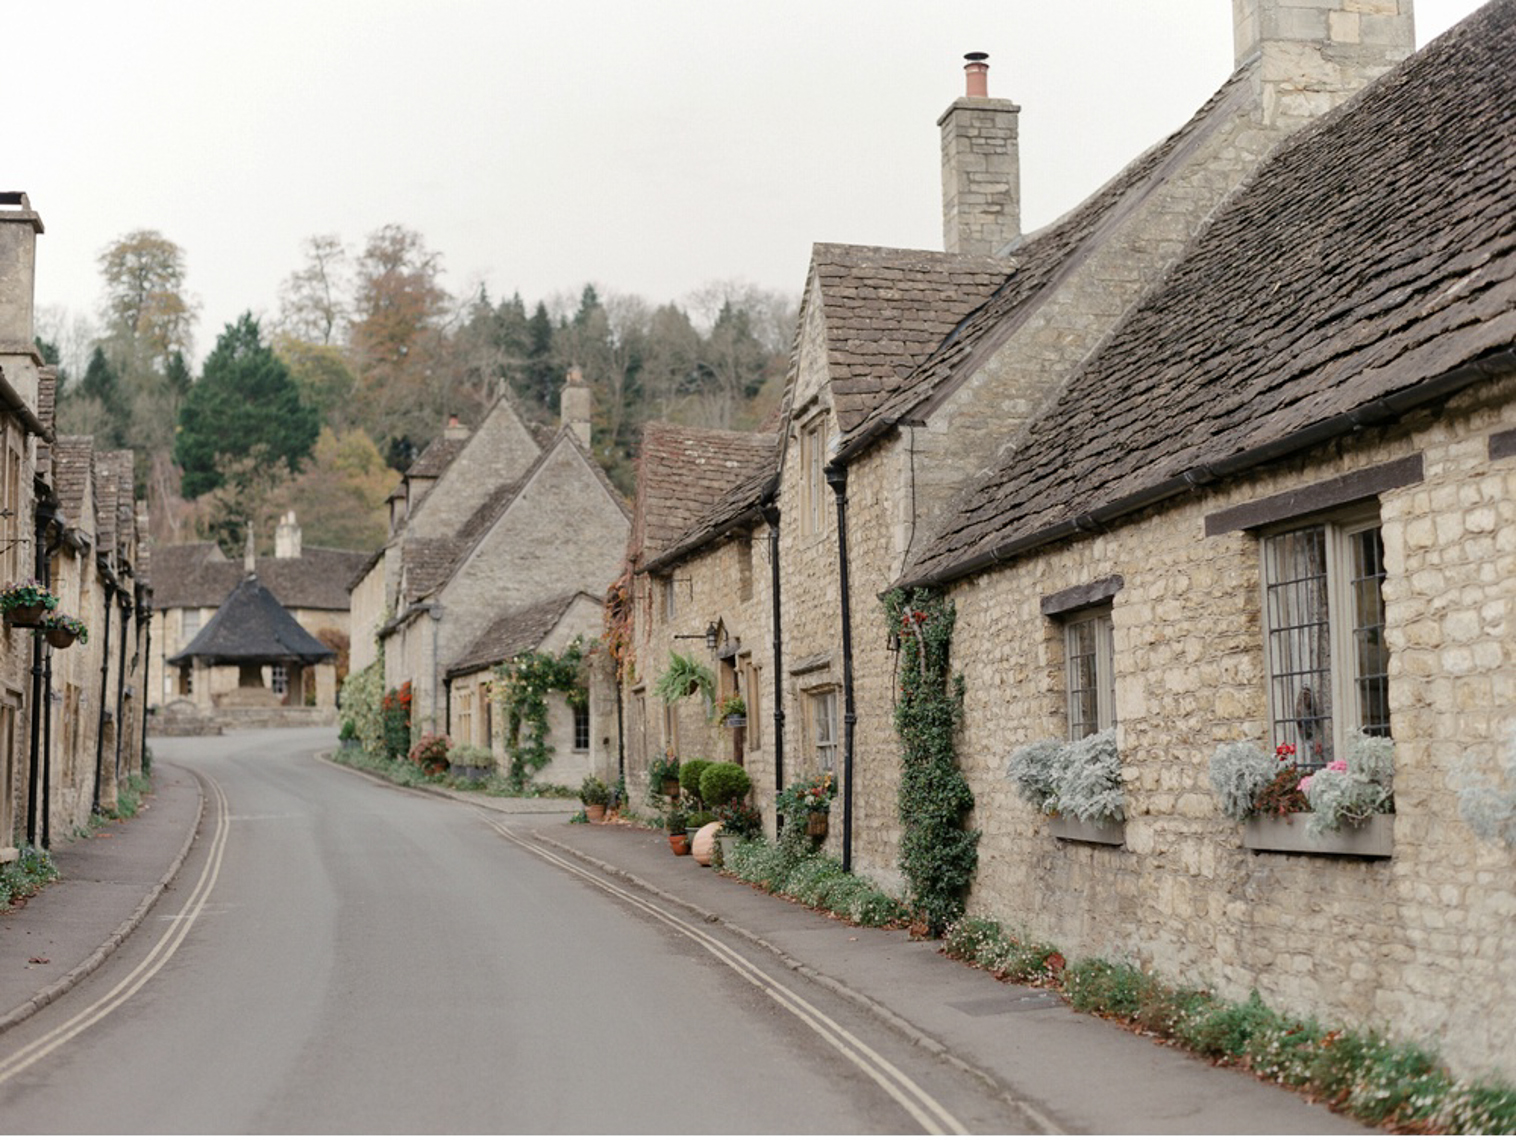 Cotswolds_WeddingPhotographer_UK©MadalinaSheldon_15.jpg